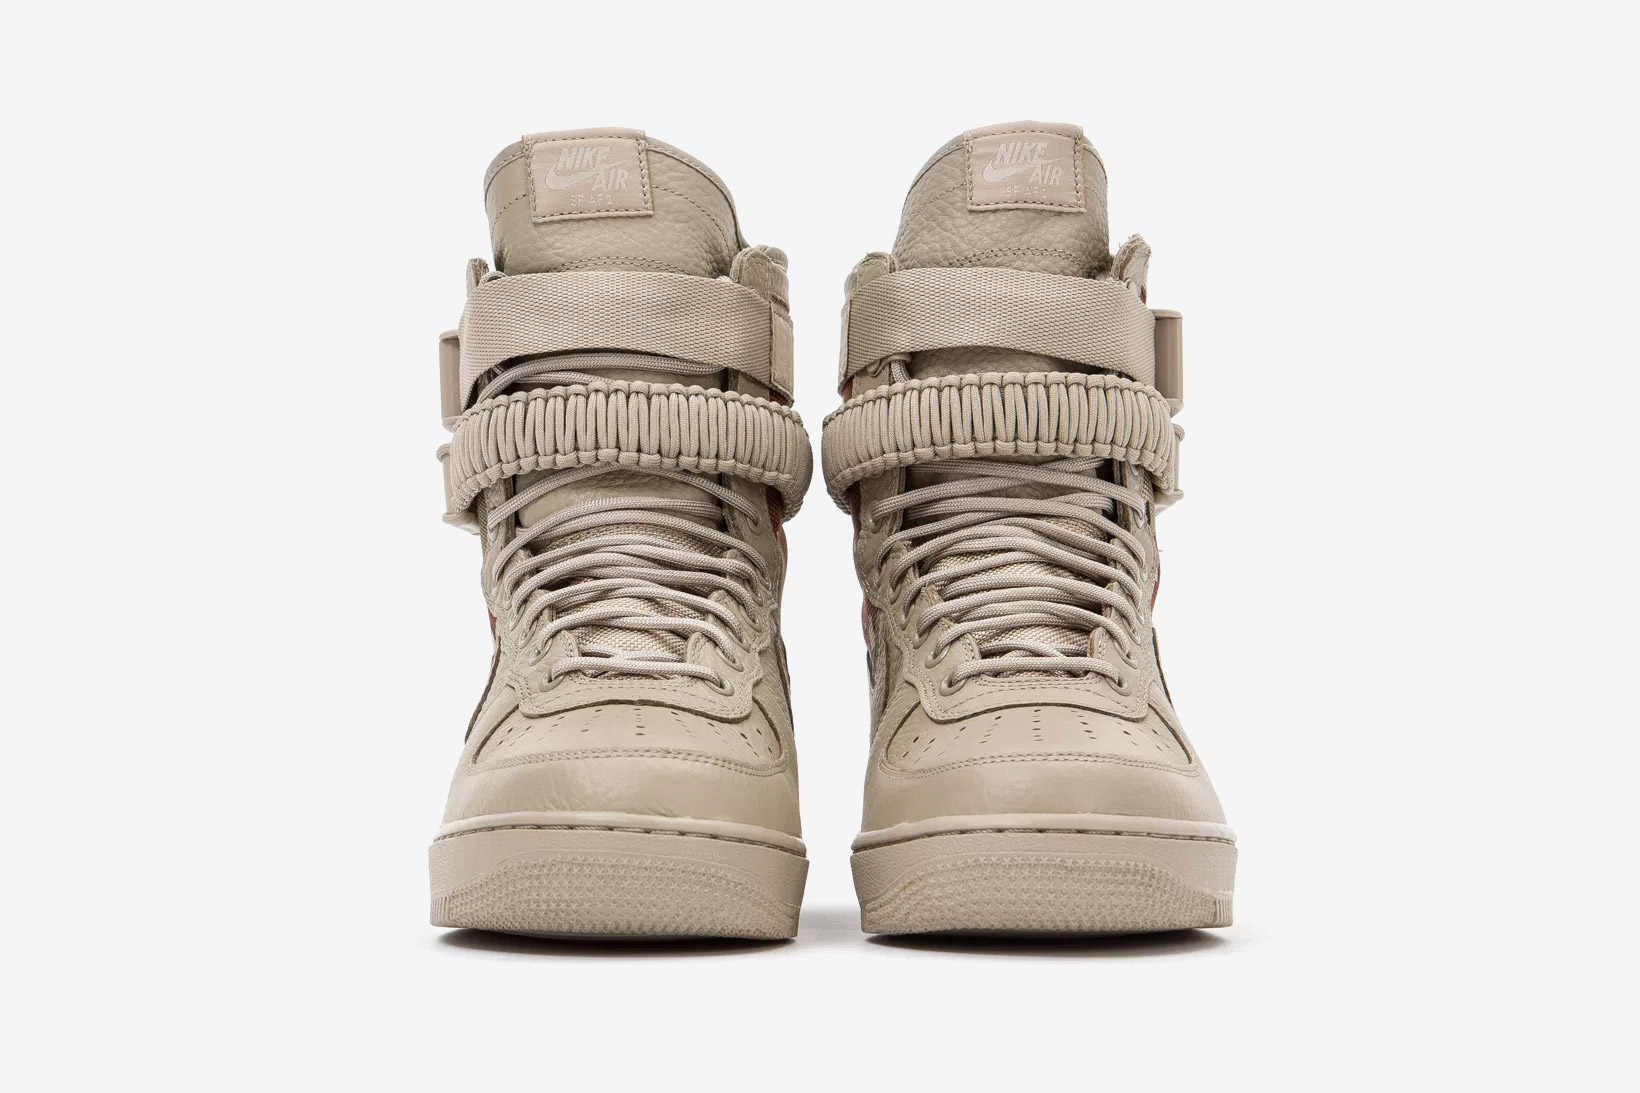 Nike SF Air Force Desert Camo 2